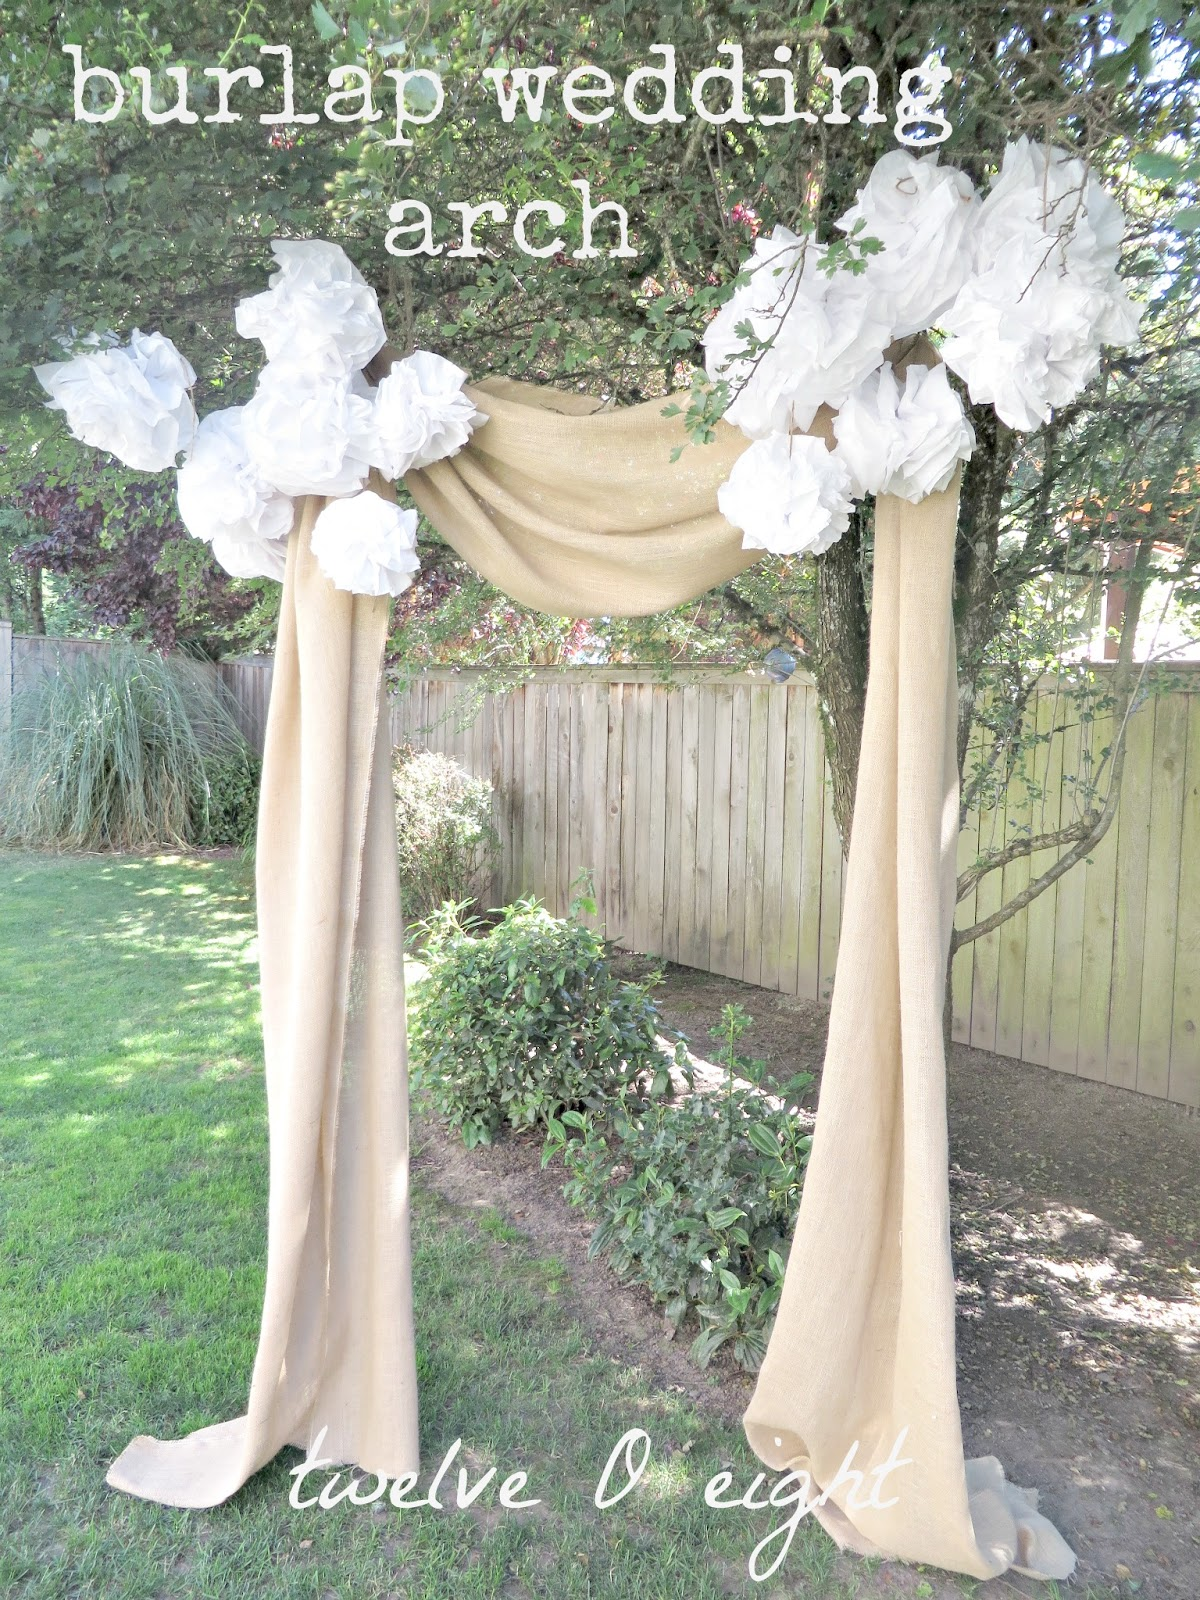 Backyard Wedding Decorations Diy : The weather was beautiful, not a cloud in the sky